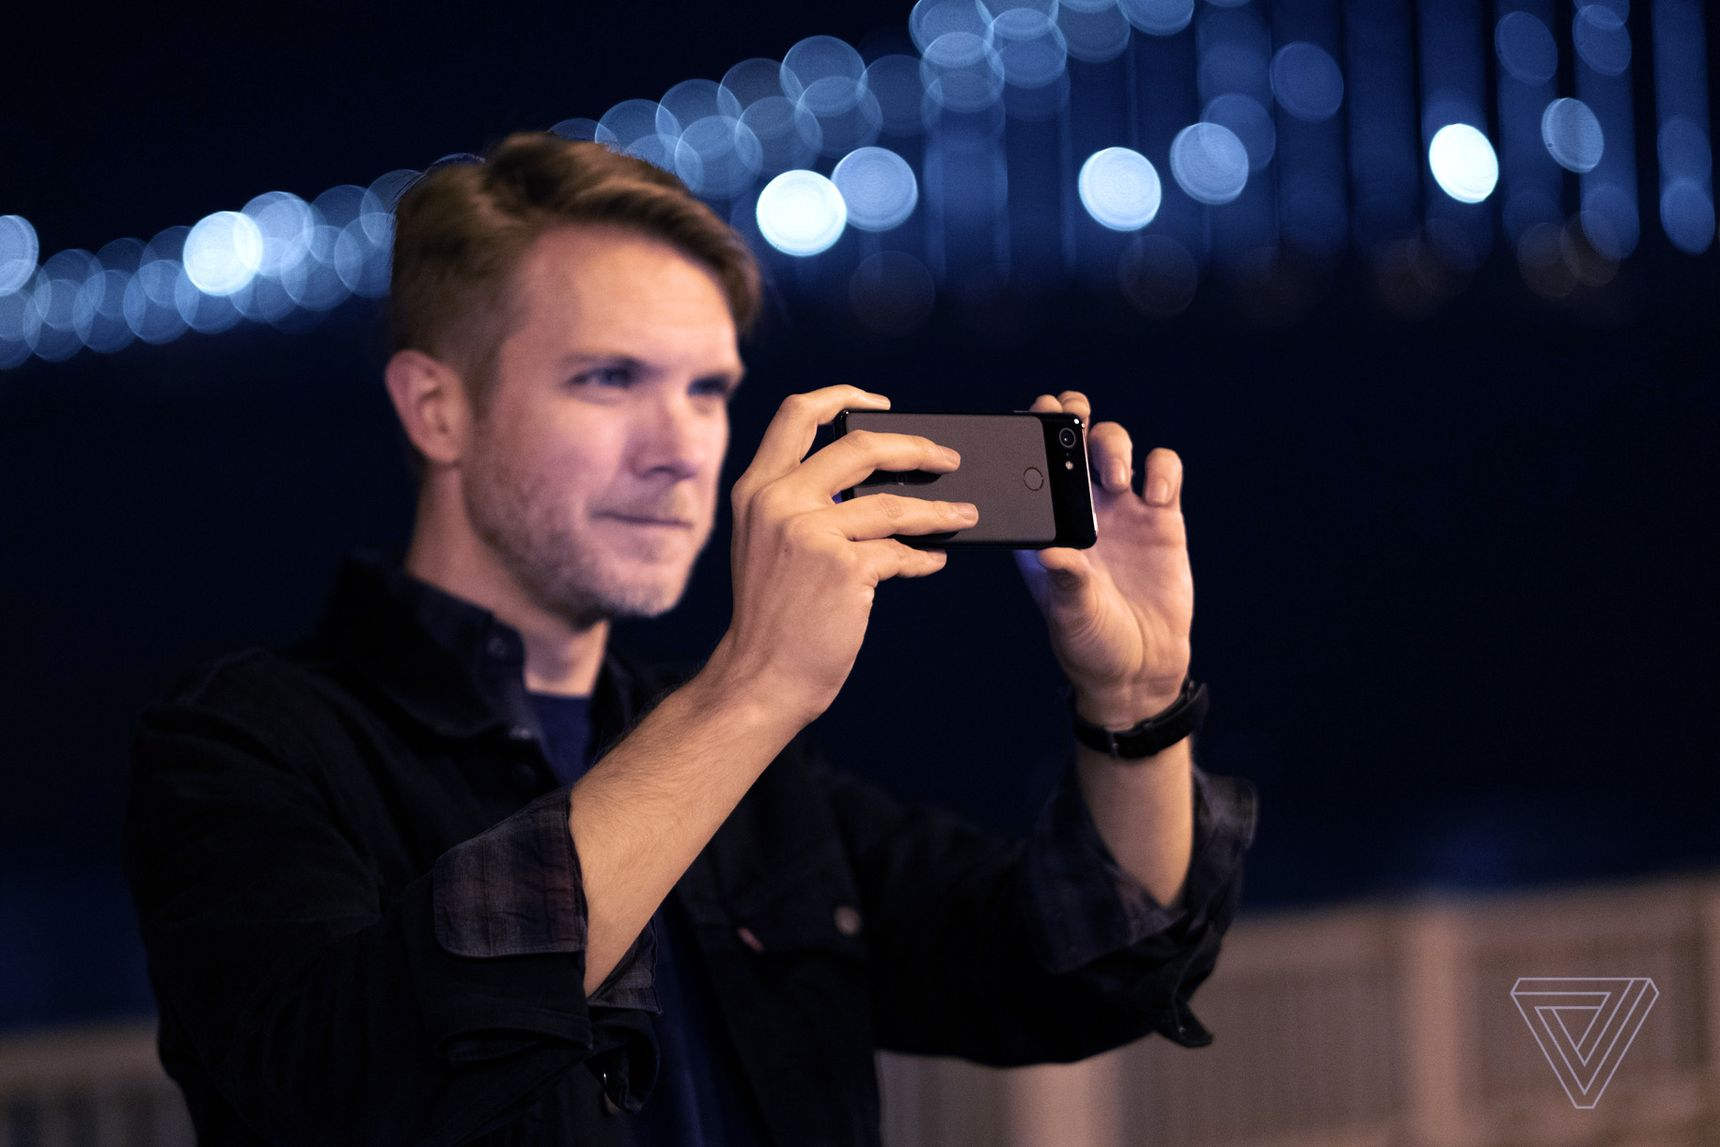 """The Verge couldn't resist turning its """"nobody is buying Apple-Samsung anymore"""" story into a native ad for Google, ironically featuring a photo of the author using the Google Pixel that nobody is actually buying"""